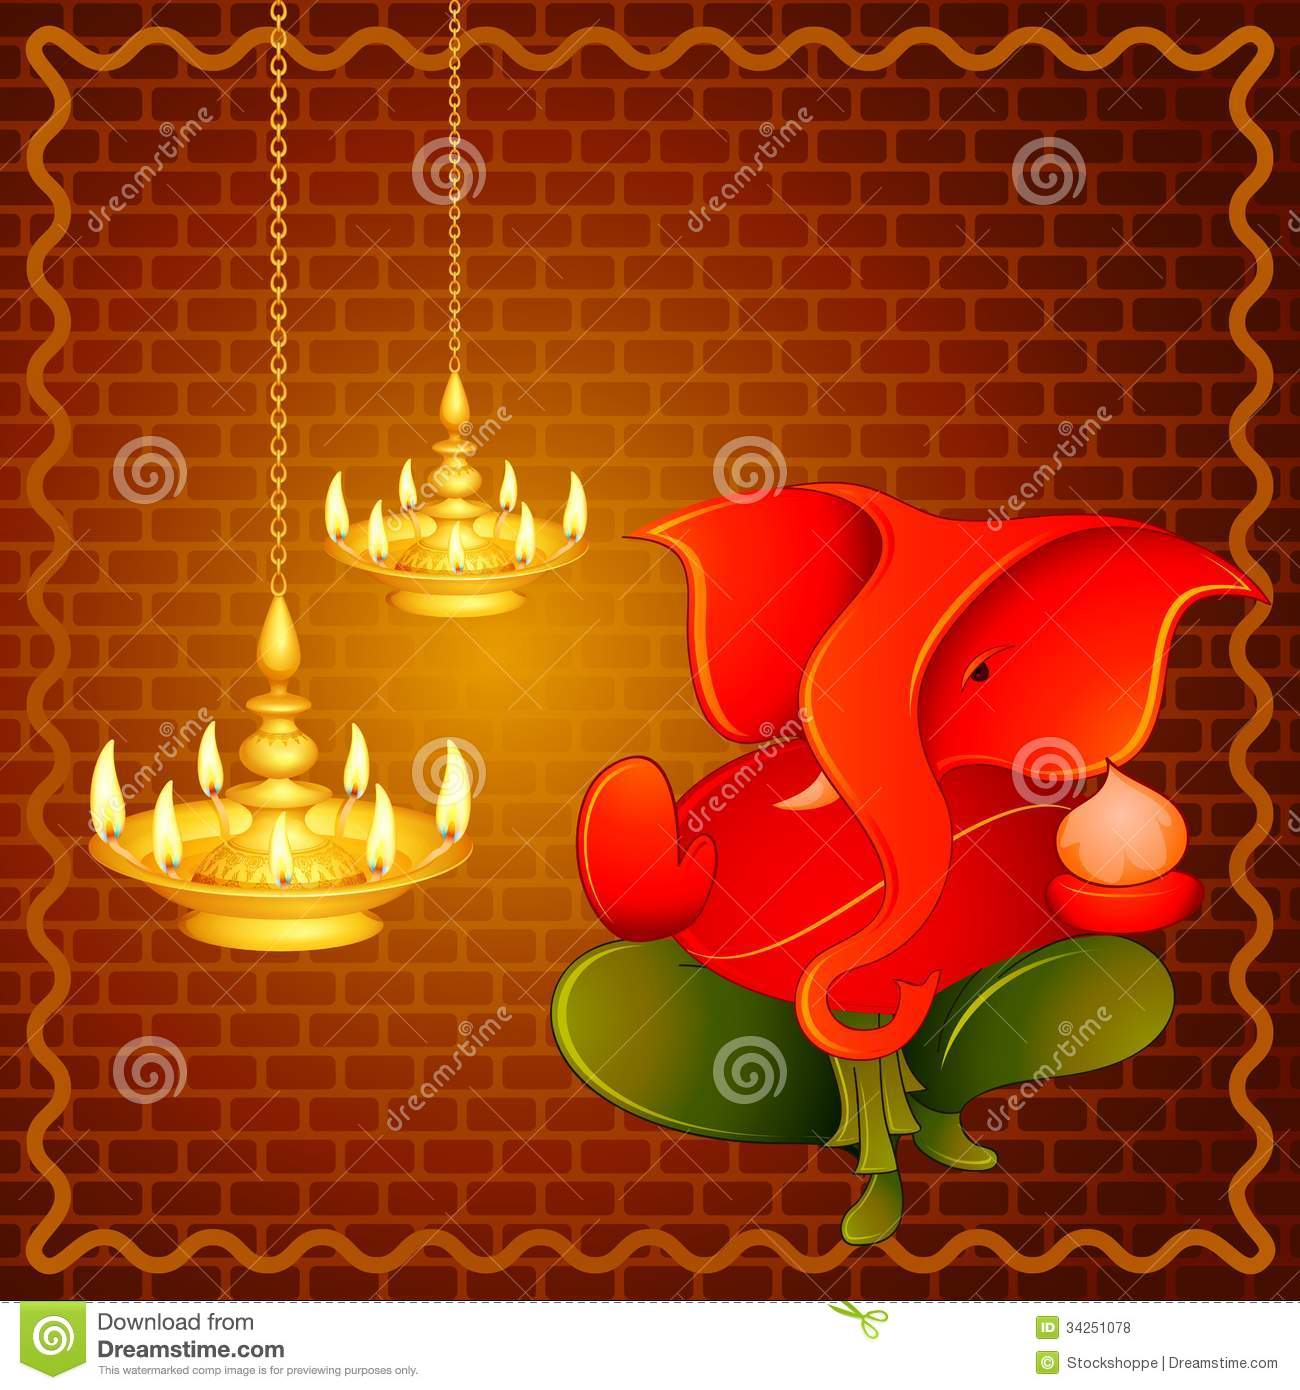 Lord Ganesha With Diwali Diya Stock Vector - Illustration of ... for Diwali Hanging Diya  588gtk